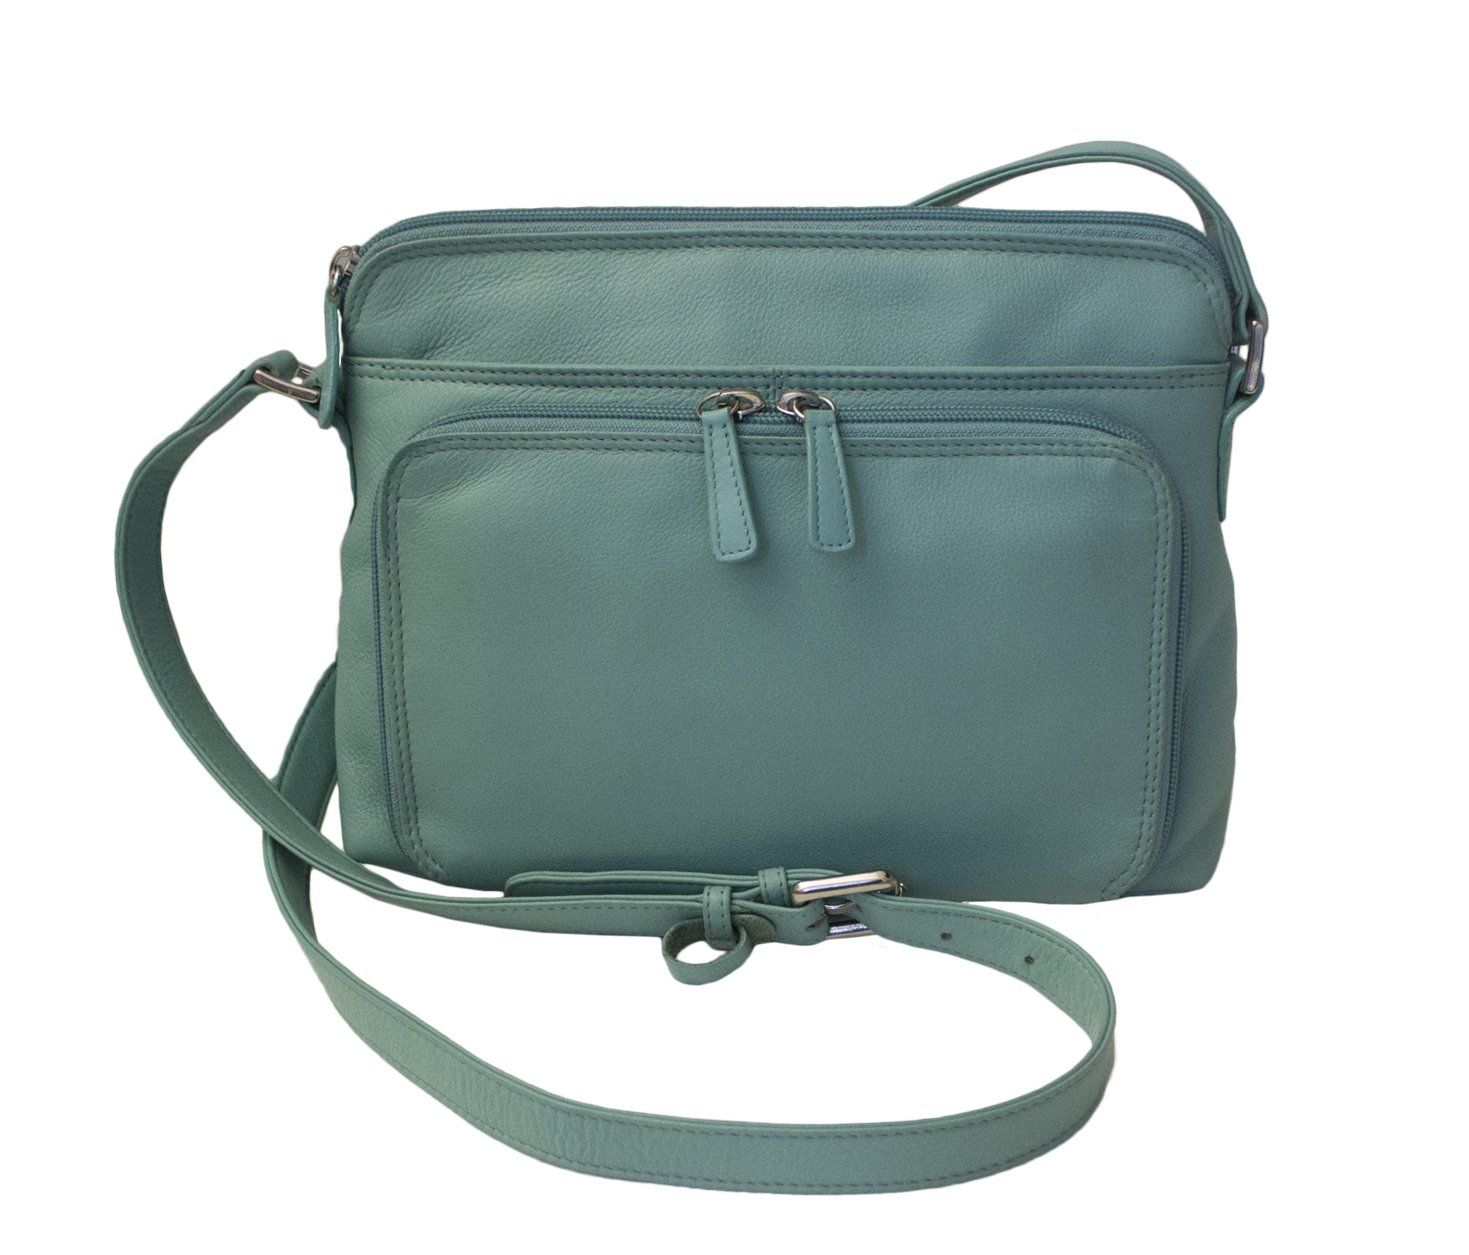 52bdc9a3bc4 This classic shoulder handbag is a great accessory to any outfit. The high  quality leather and construction gives it a long lasting look and feel.